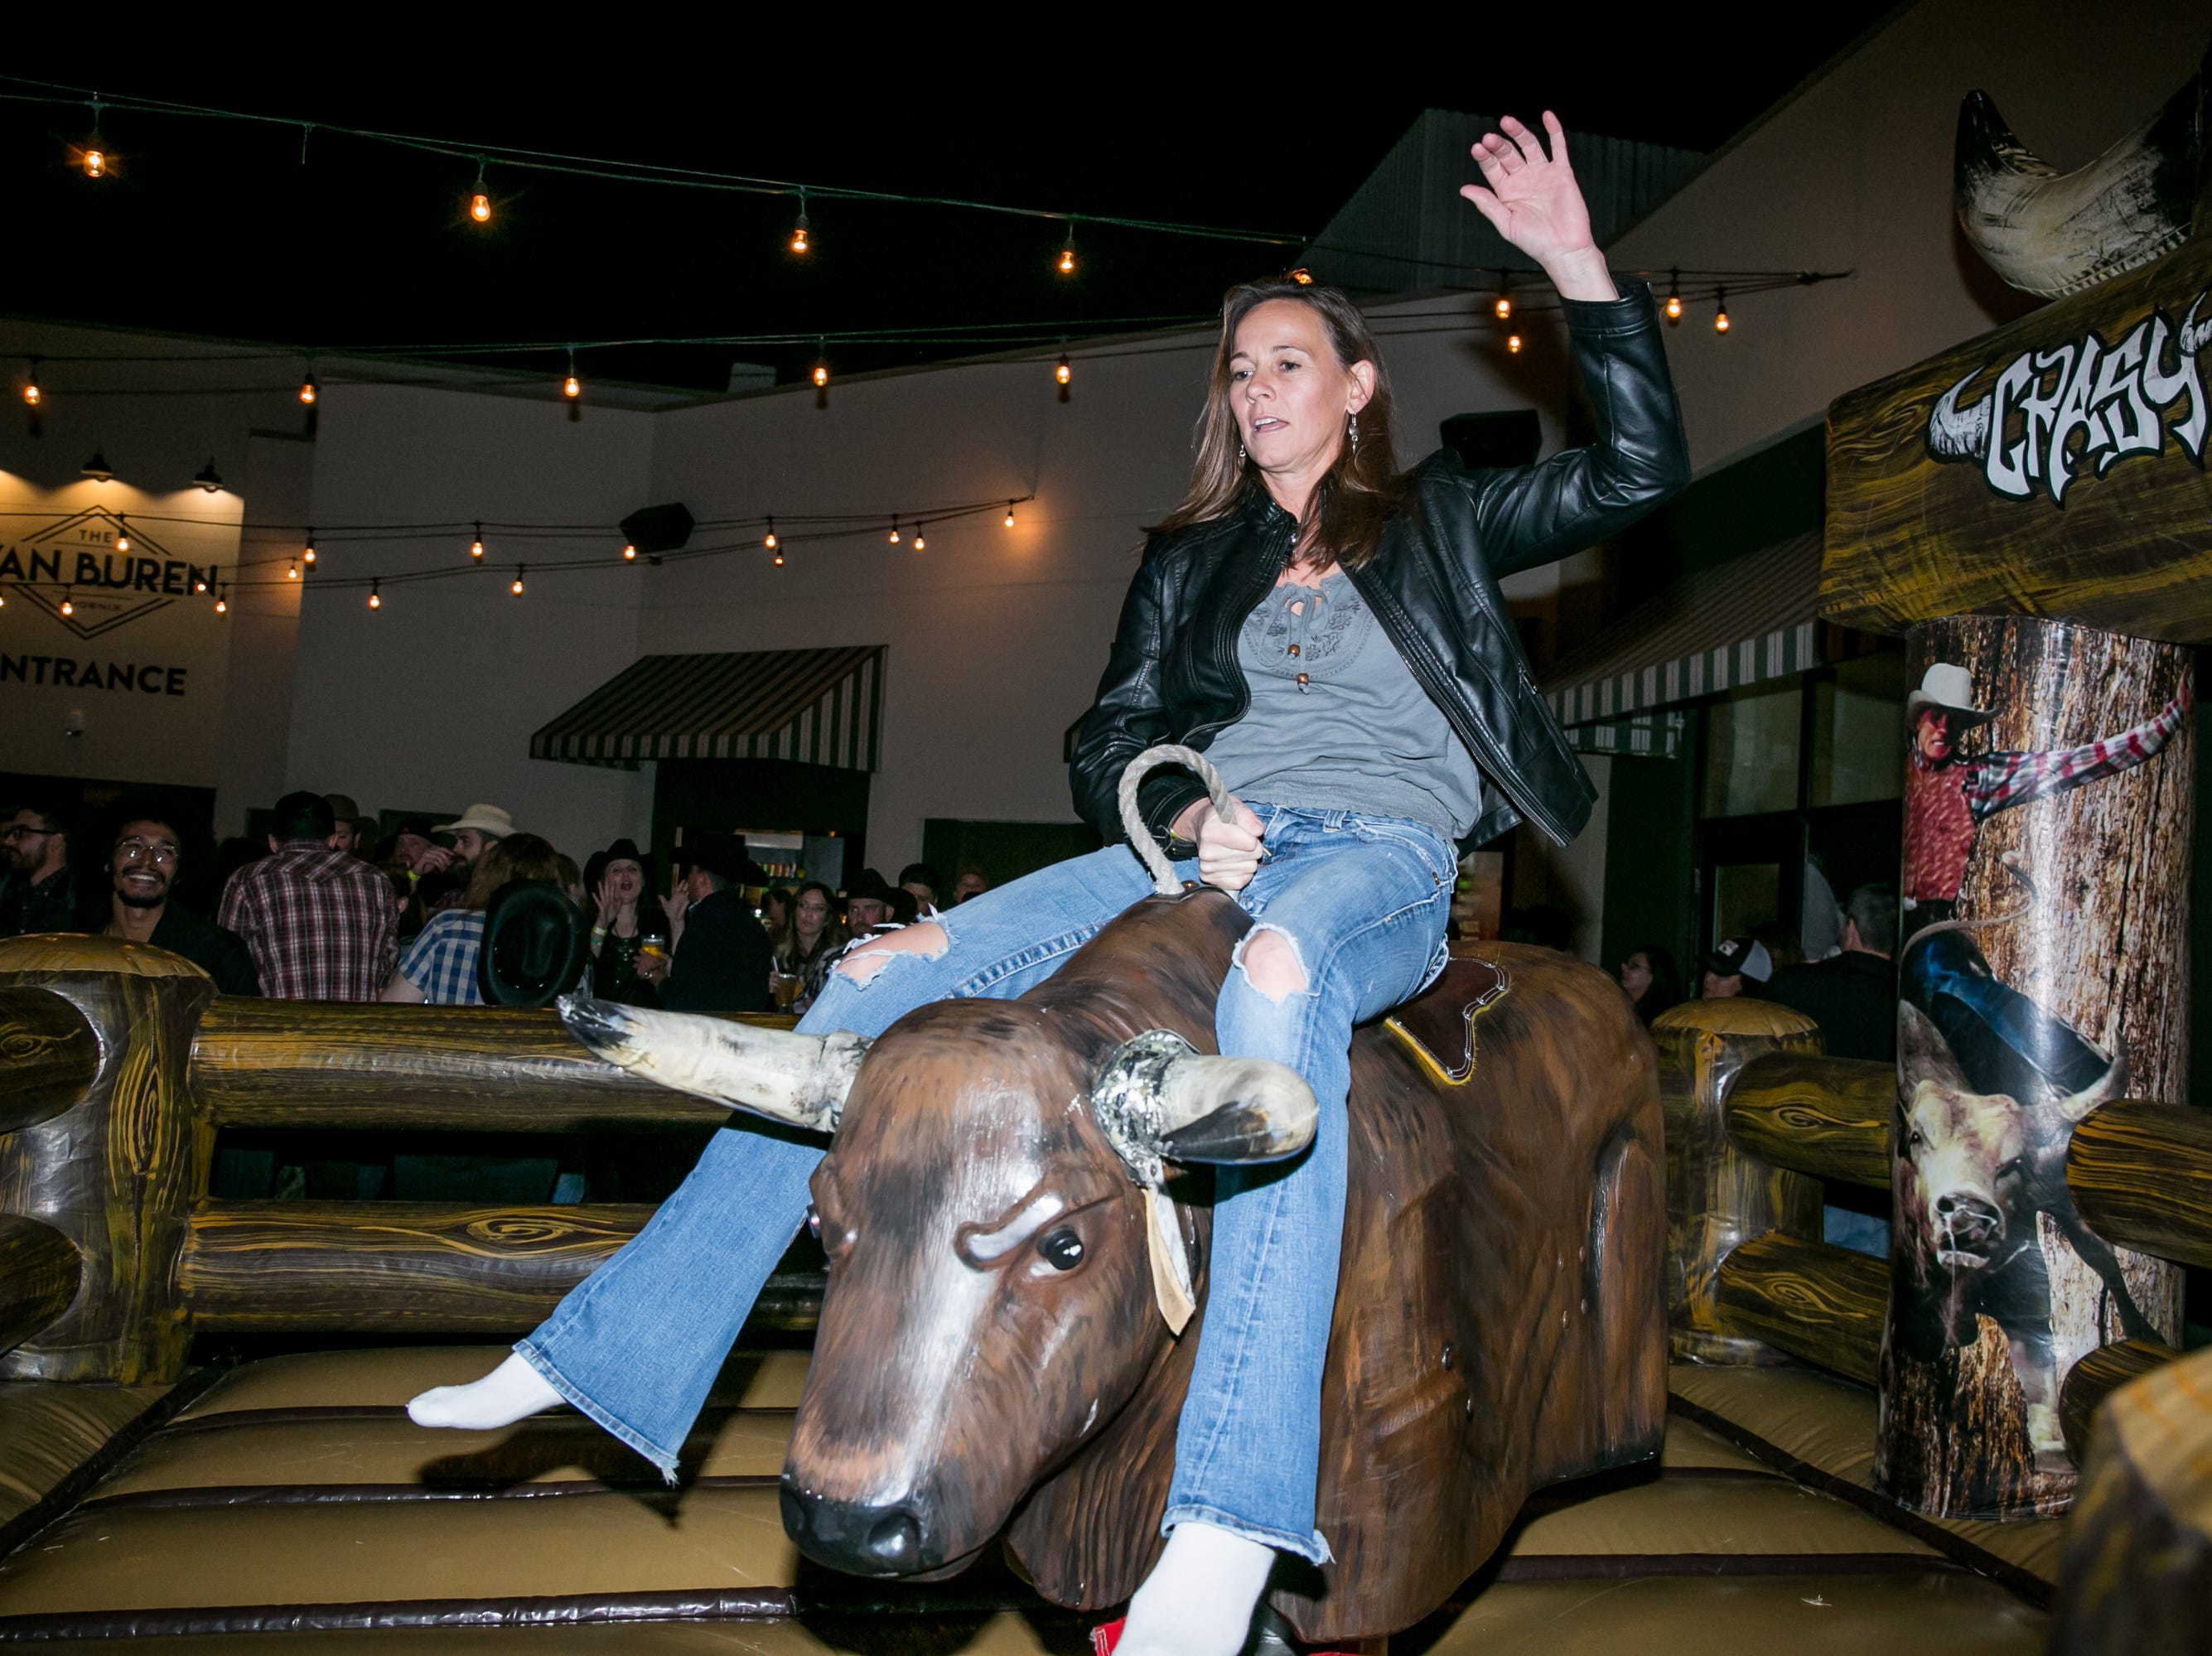 The mechanical bull was an audience favorite during the KMLE Country 90's Throwback at The Van Buren on Friday, Jan. 11, 2019.